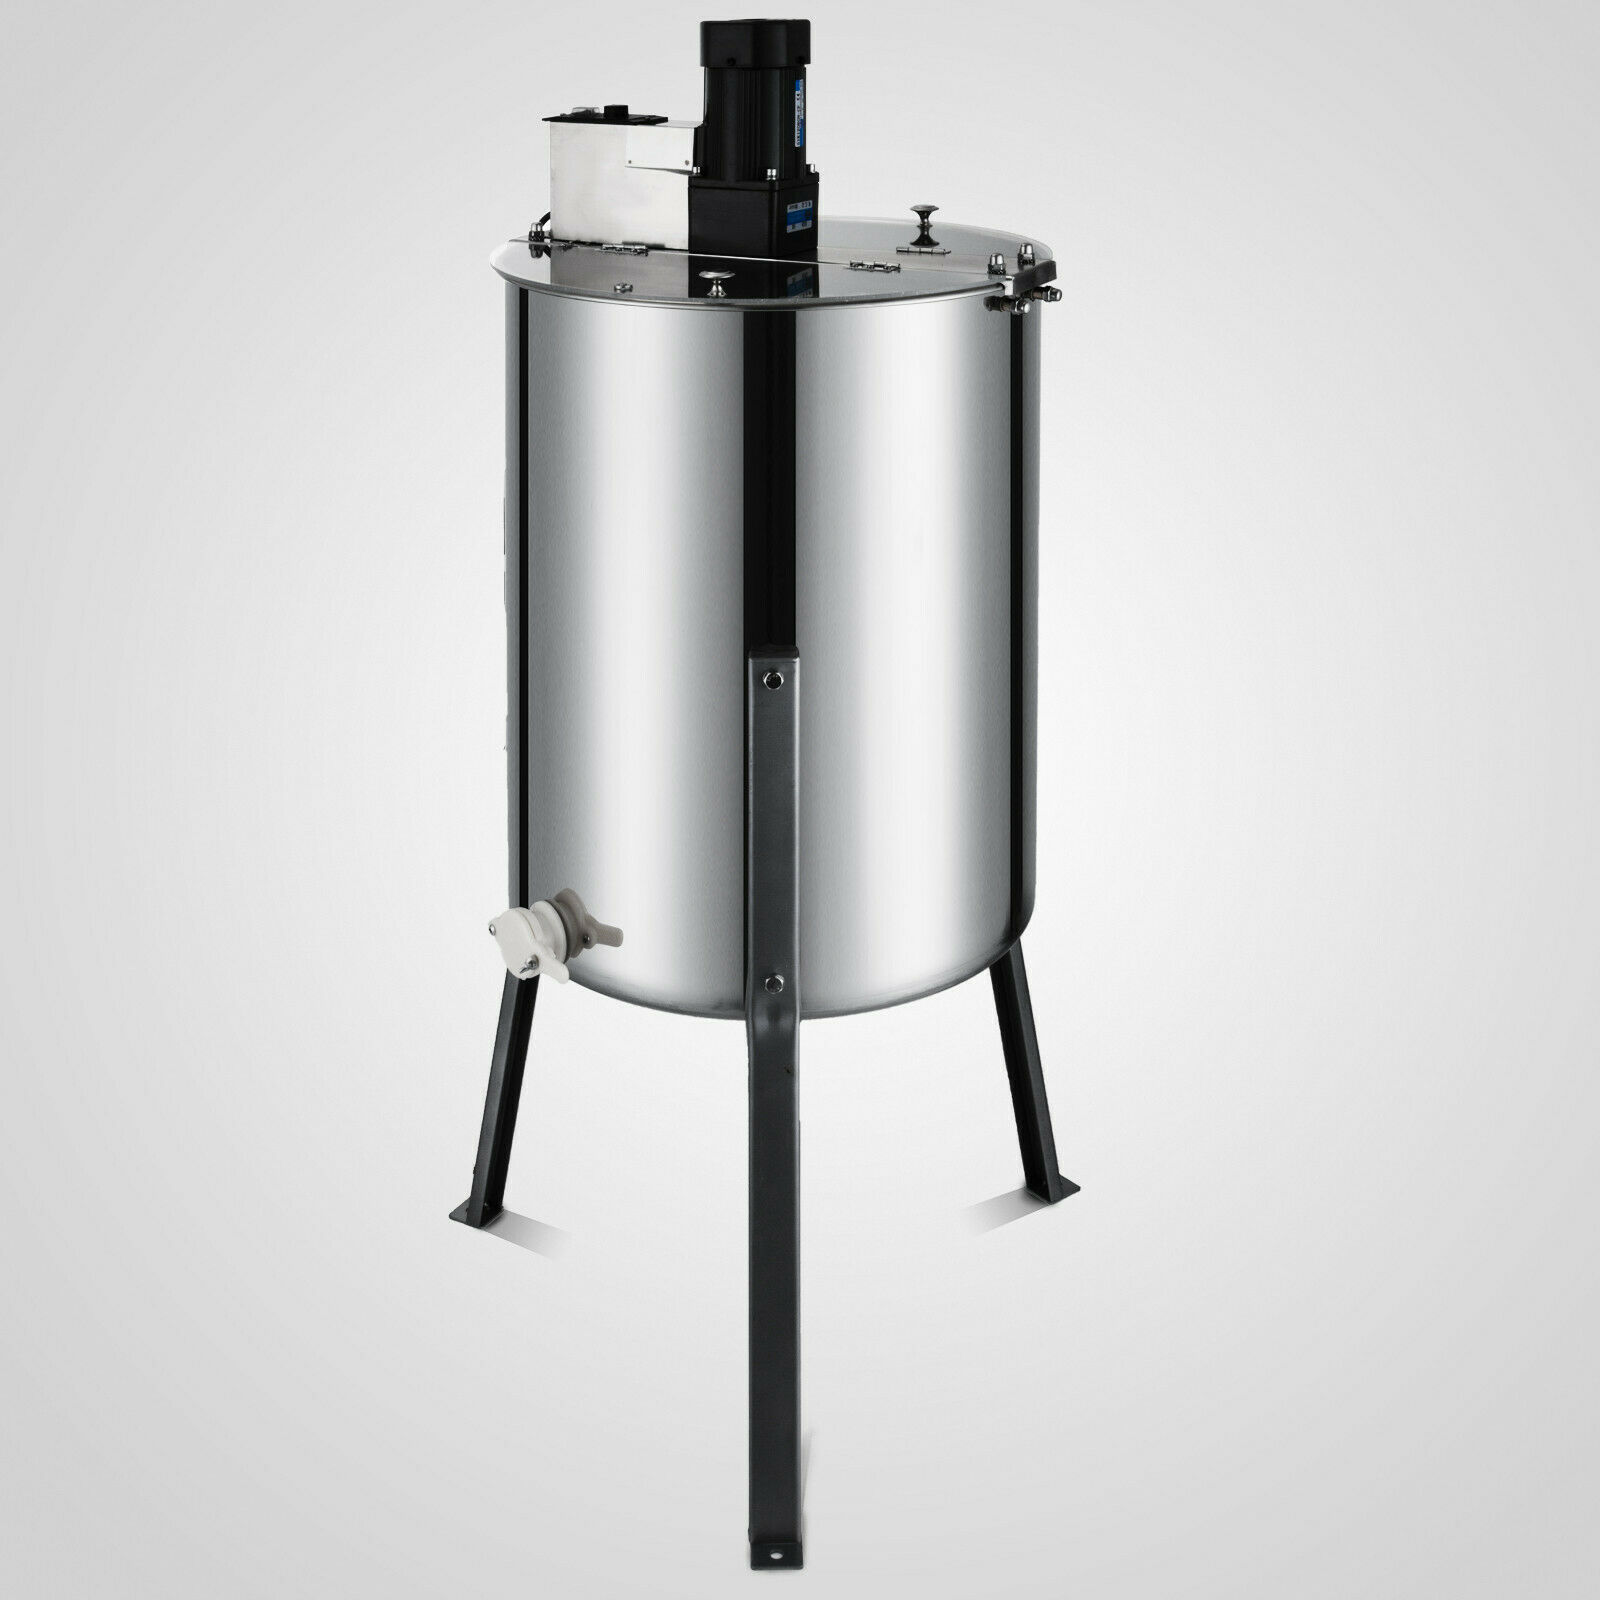 VEVOR Honey Bee Electric Extractor 4 Frame Stainless Steel Honeycomb Spinner With Free Shipping